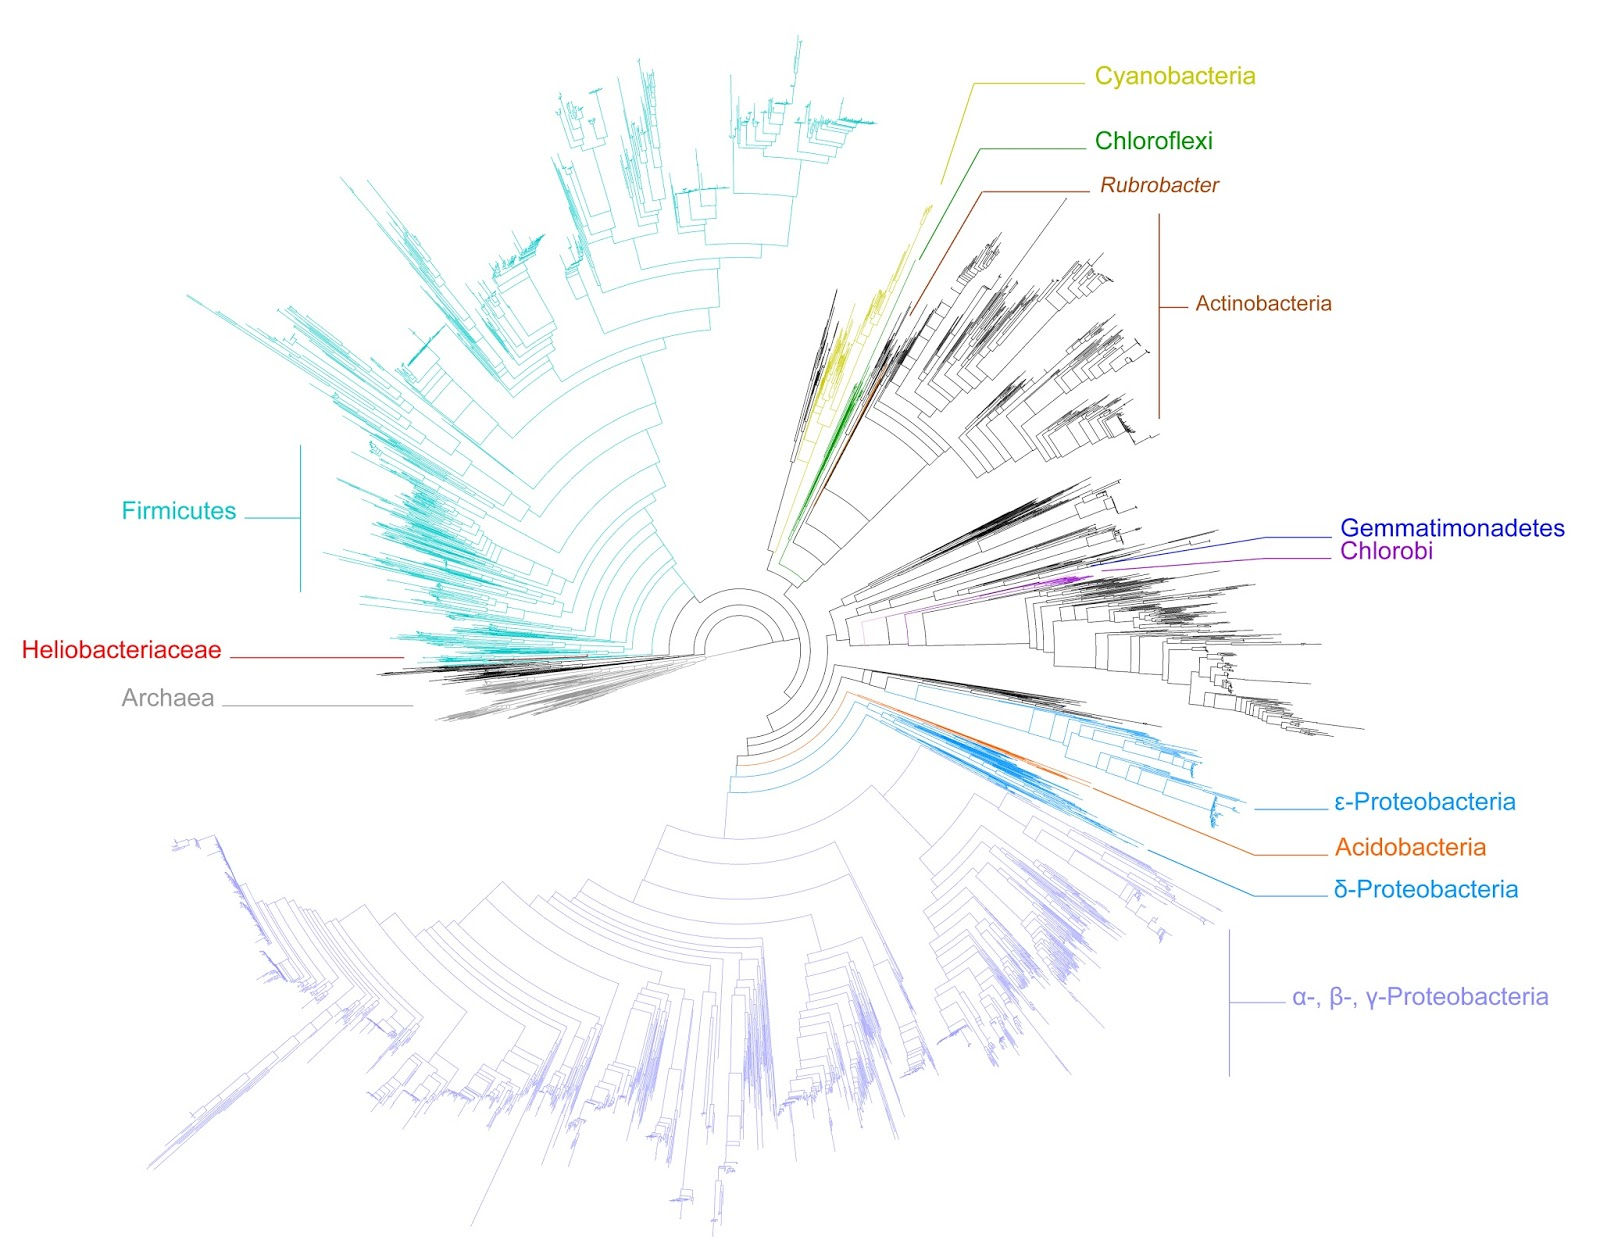 small resolution of tree of life highlighting phototrophic clades the tree is taken from segata et al 2013 it s open access and freely available